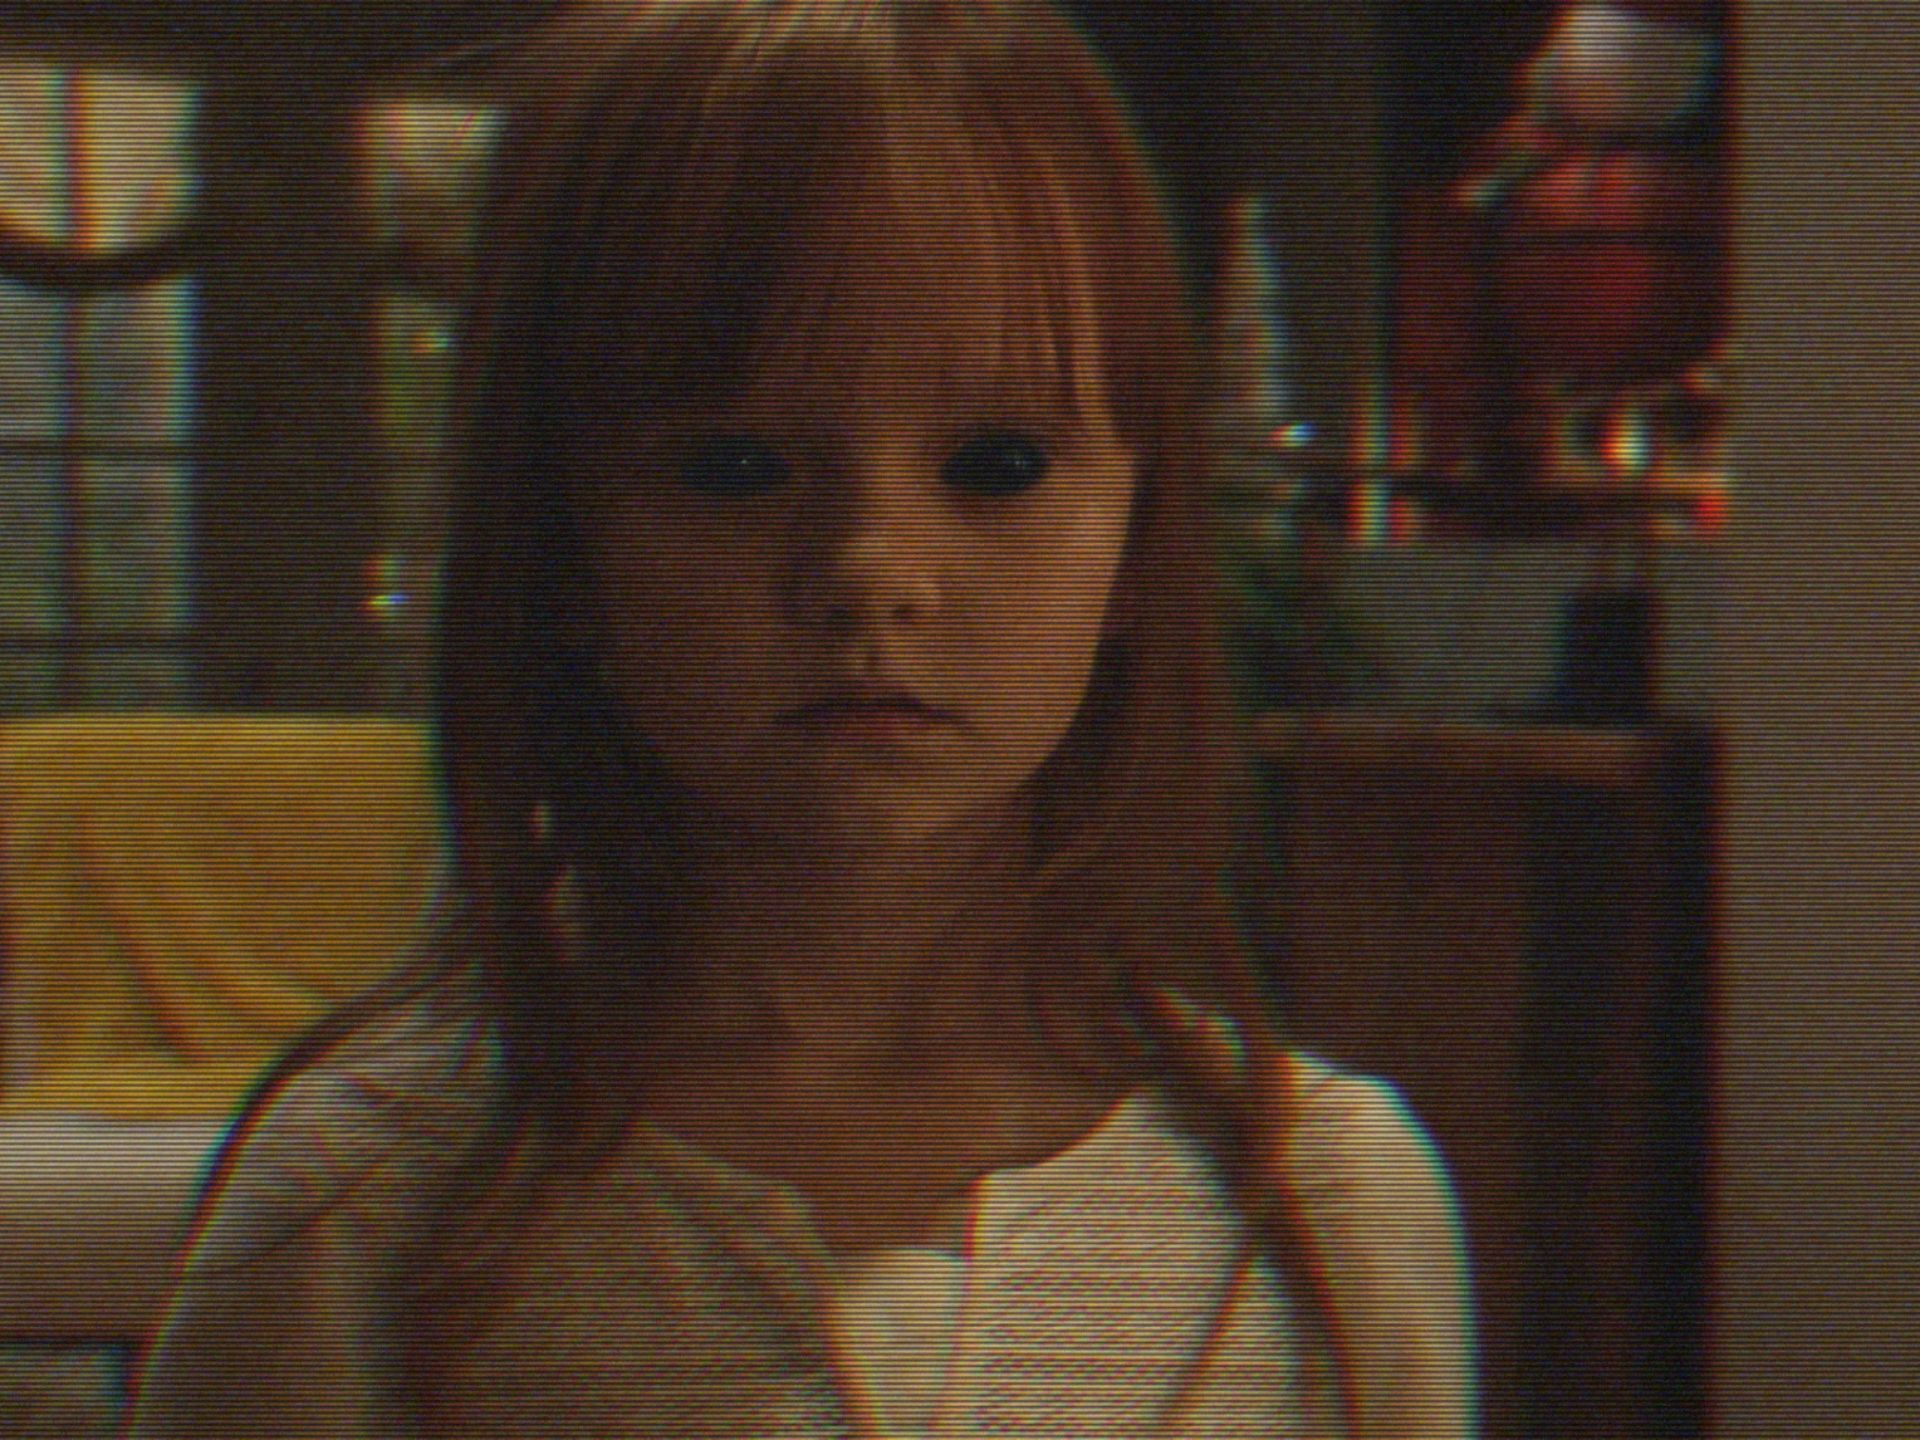 Foto de Imágenes de 'Paranormal Activity: The Ghost Dimension' (1/3)